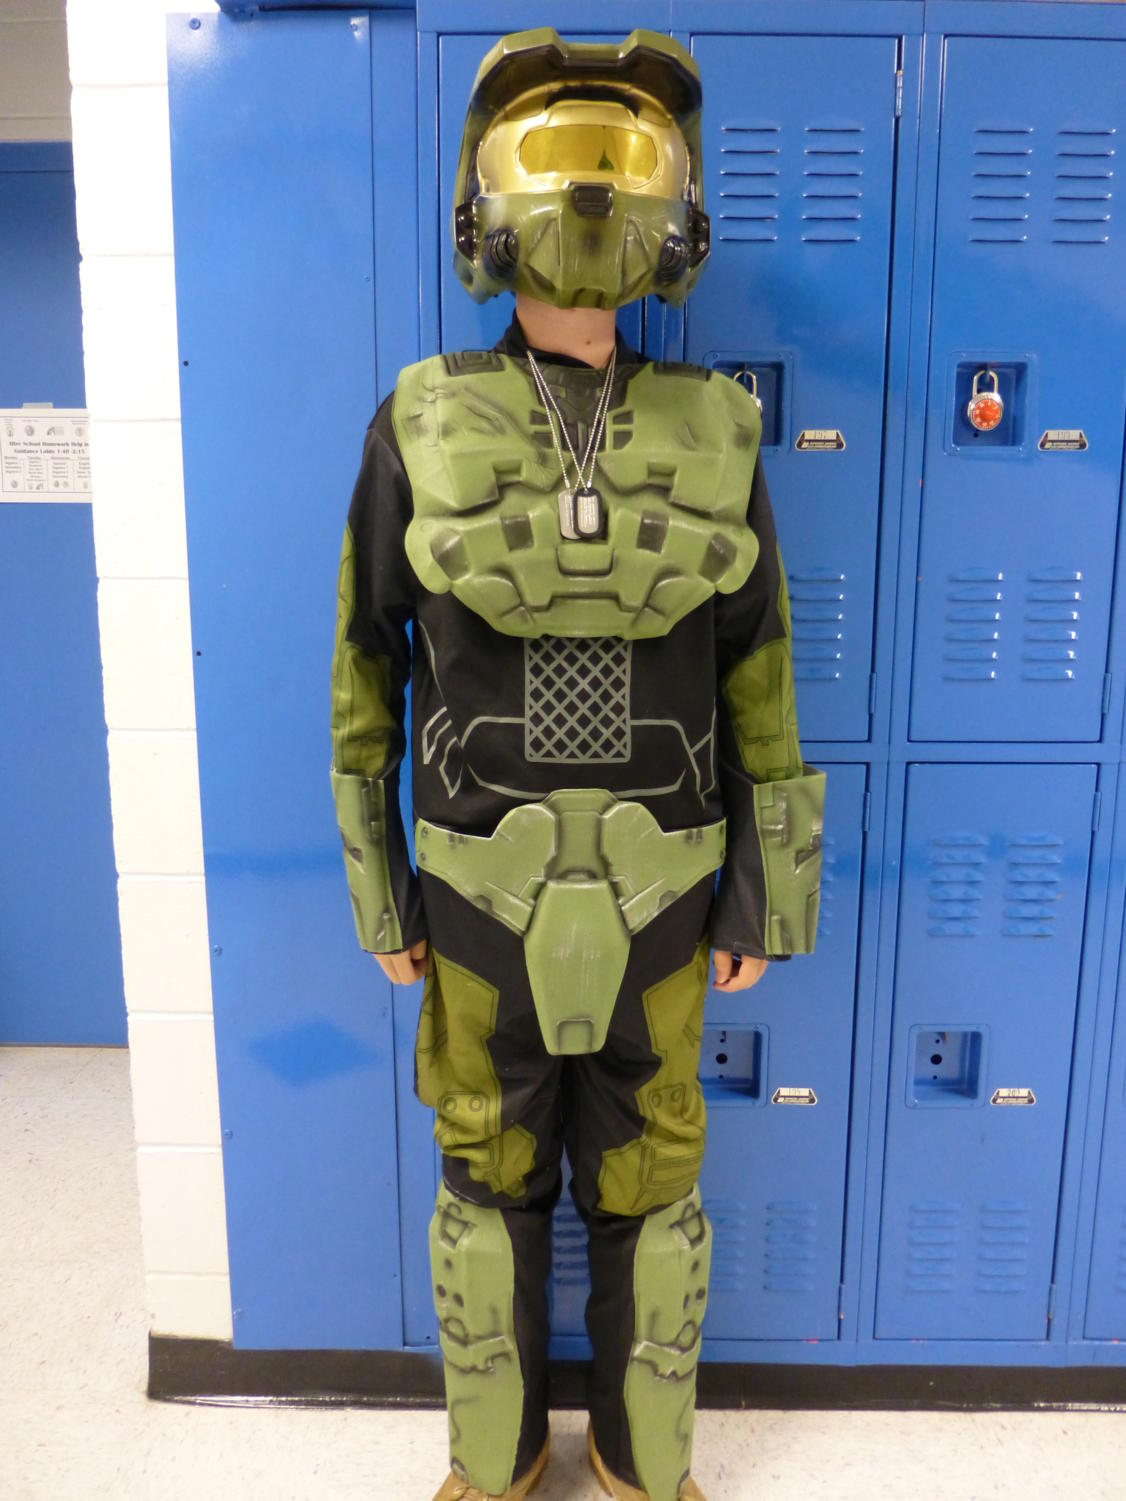 A student dressed up as